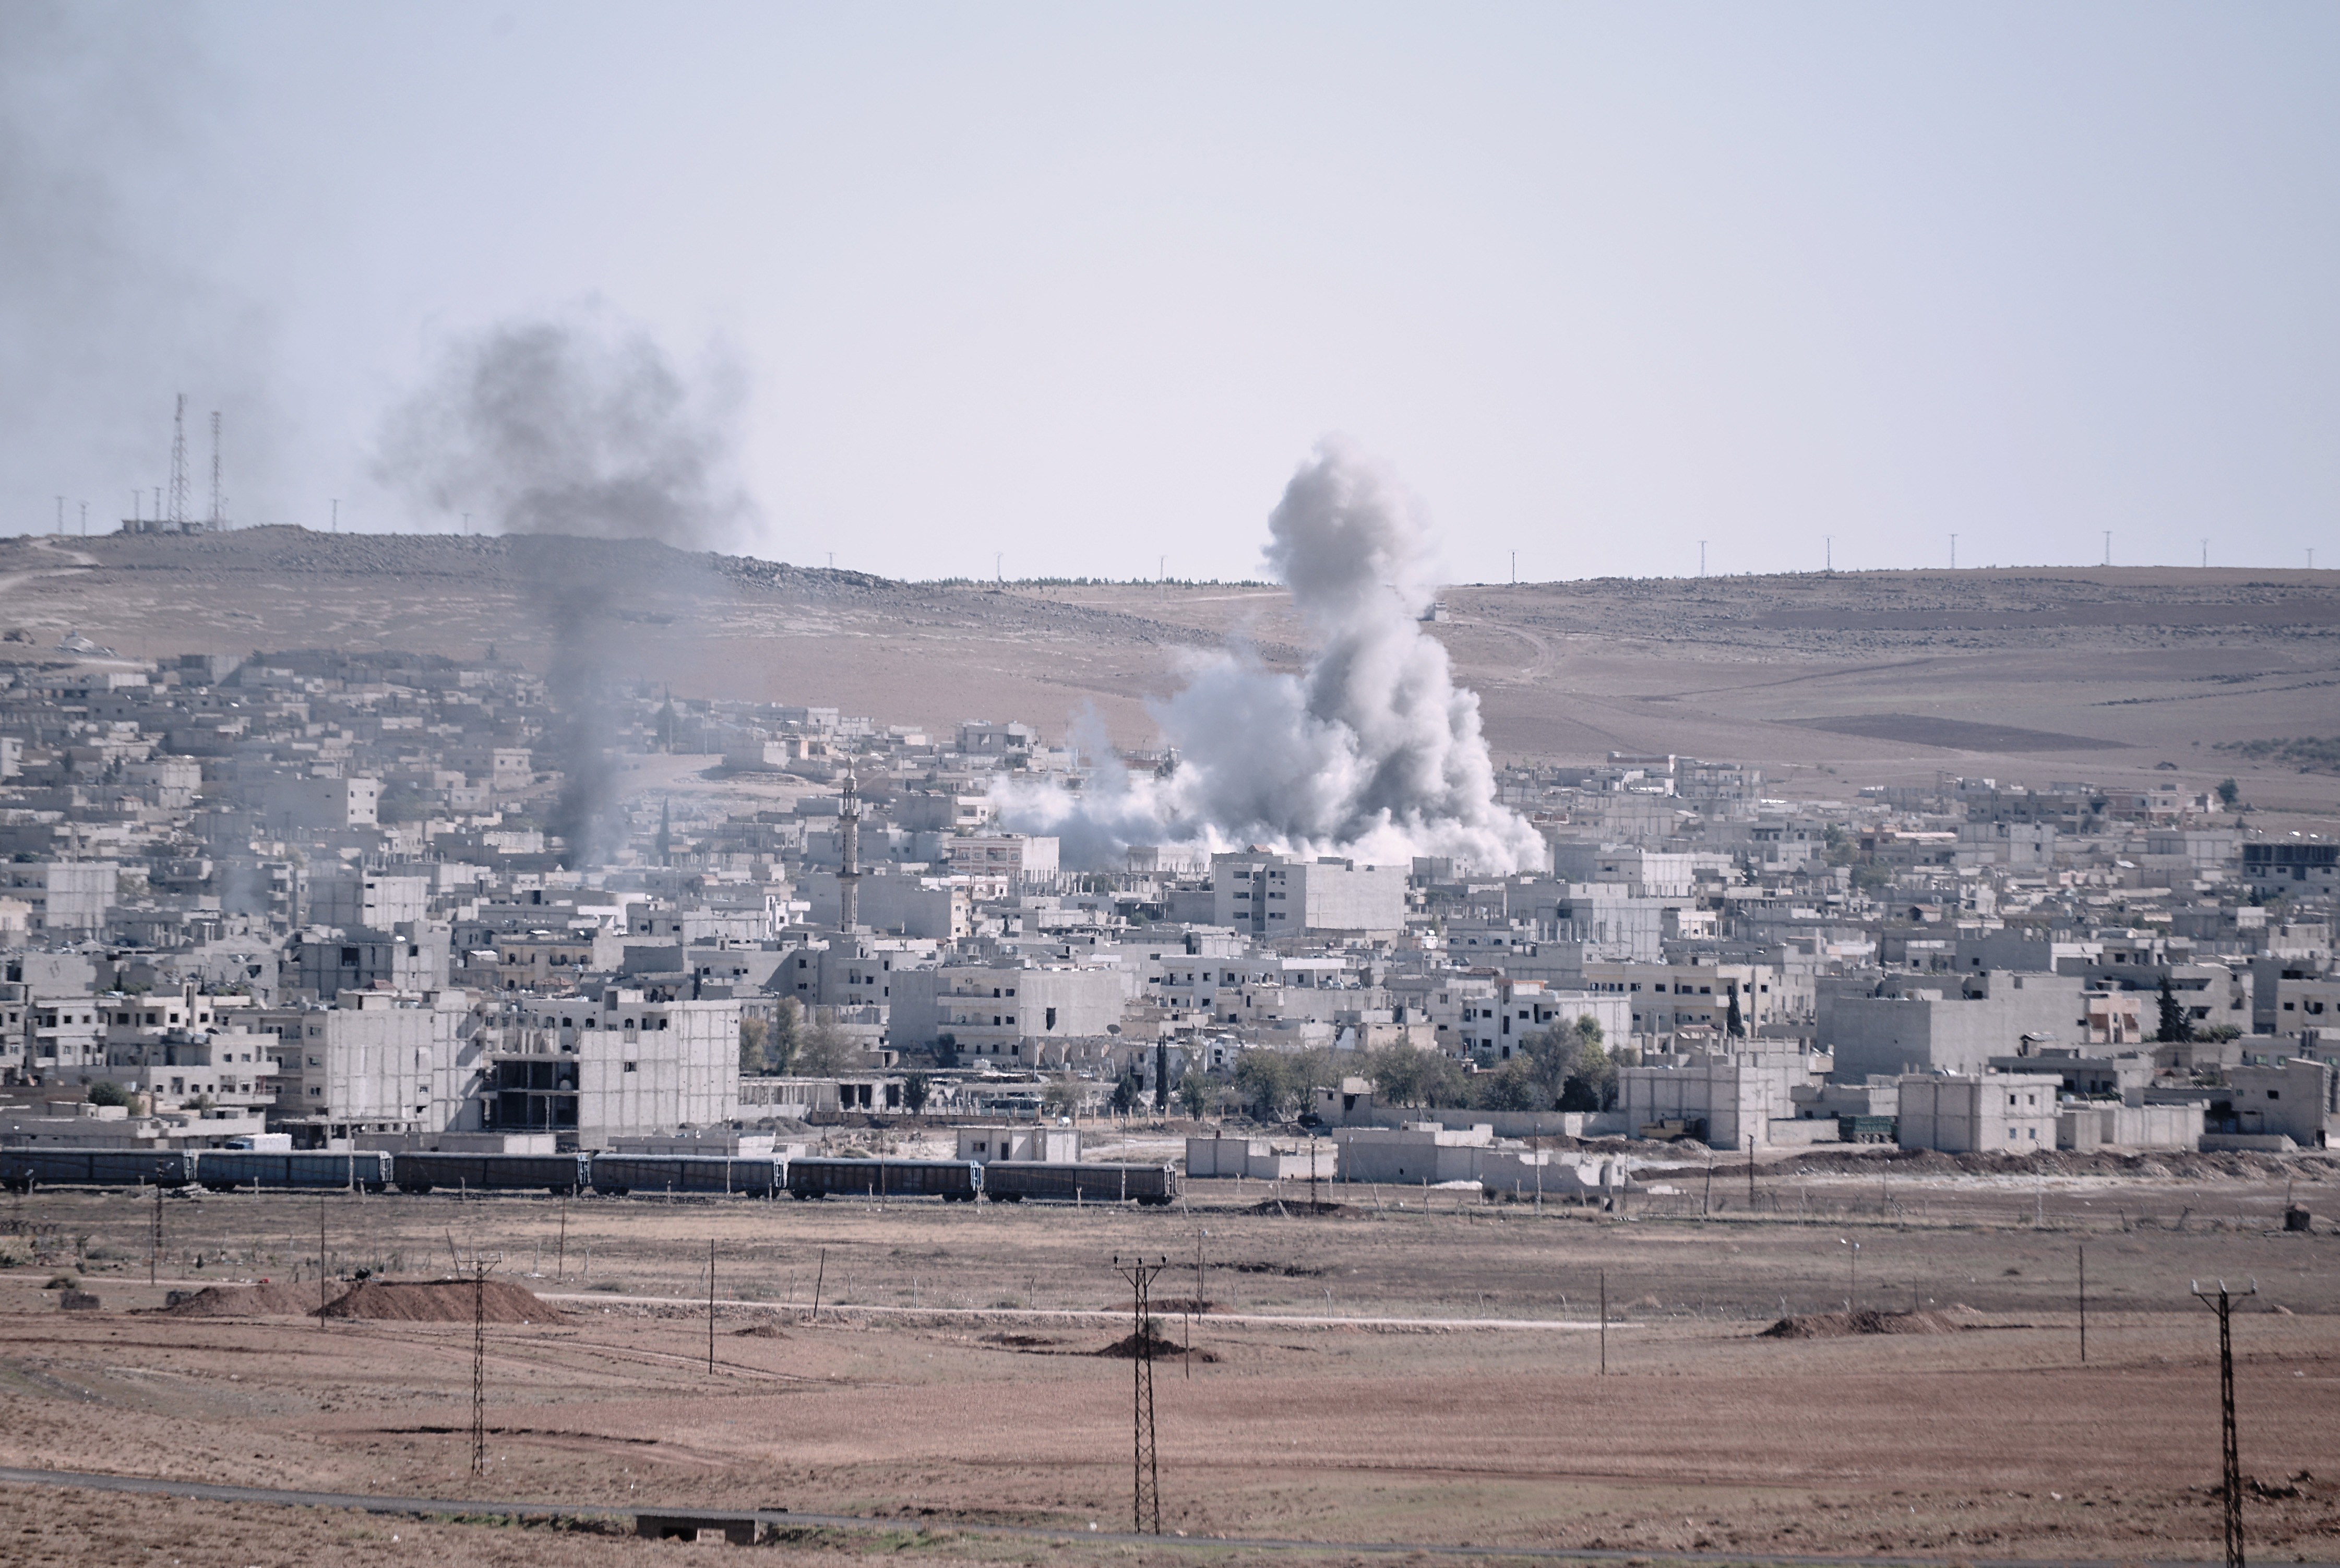 Islamic State Conflict, Kobane, Syria - 21 Oct 2014